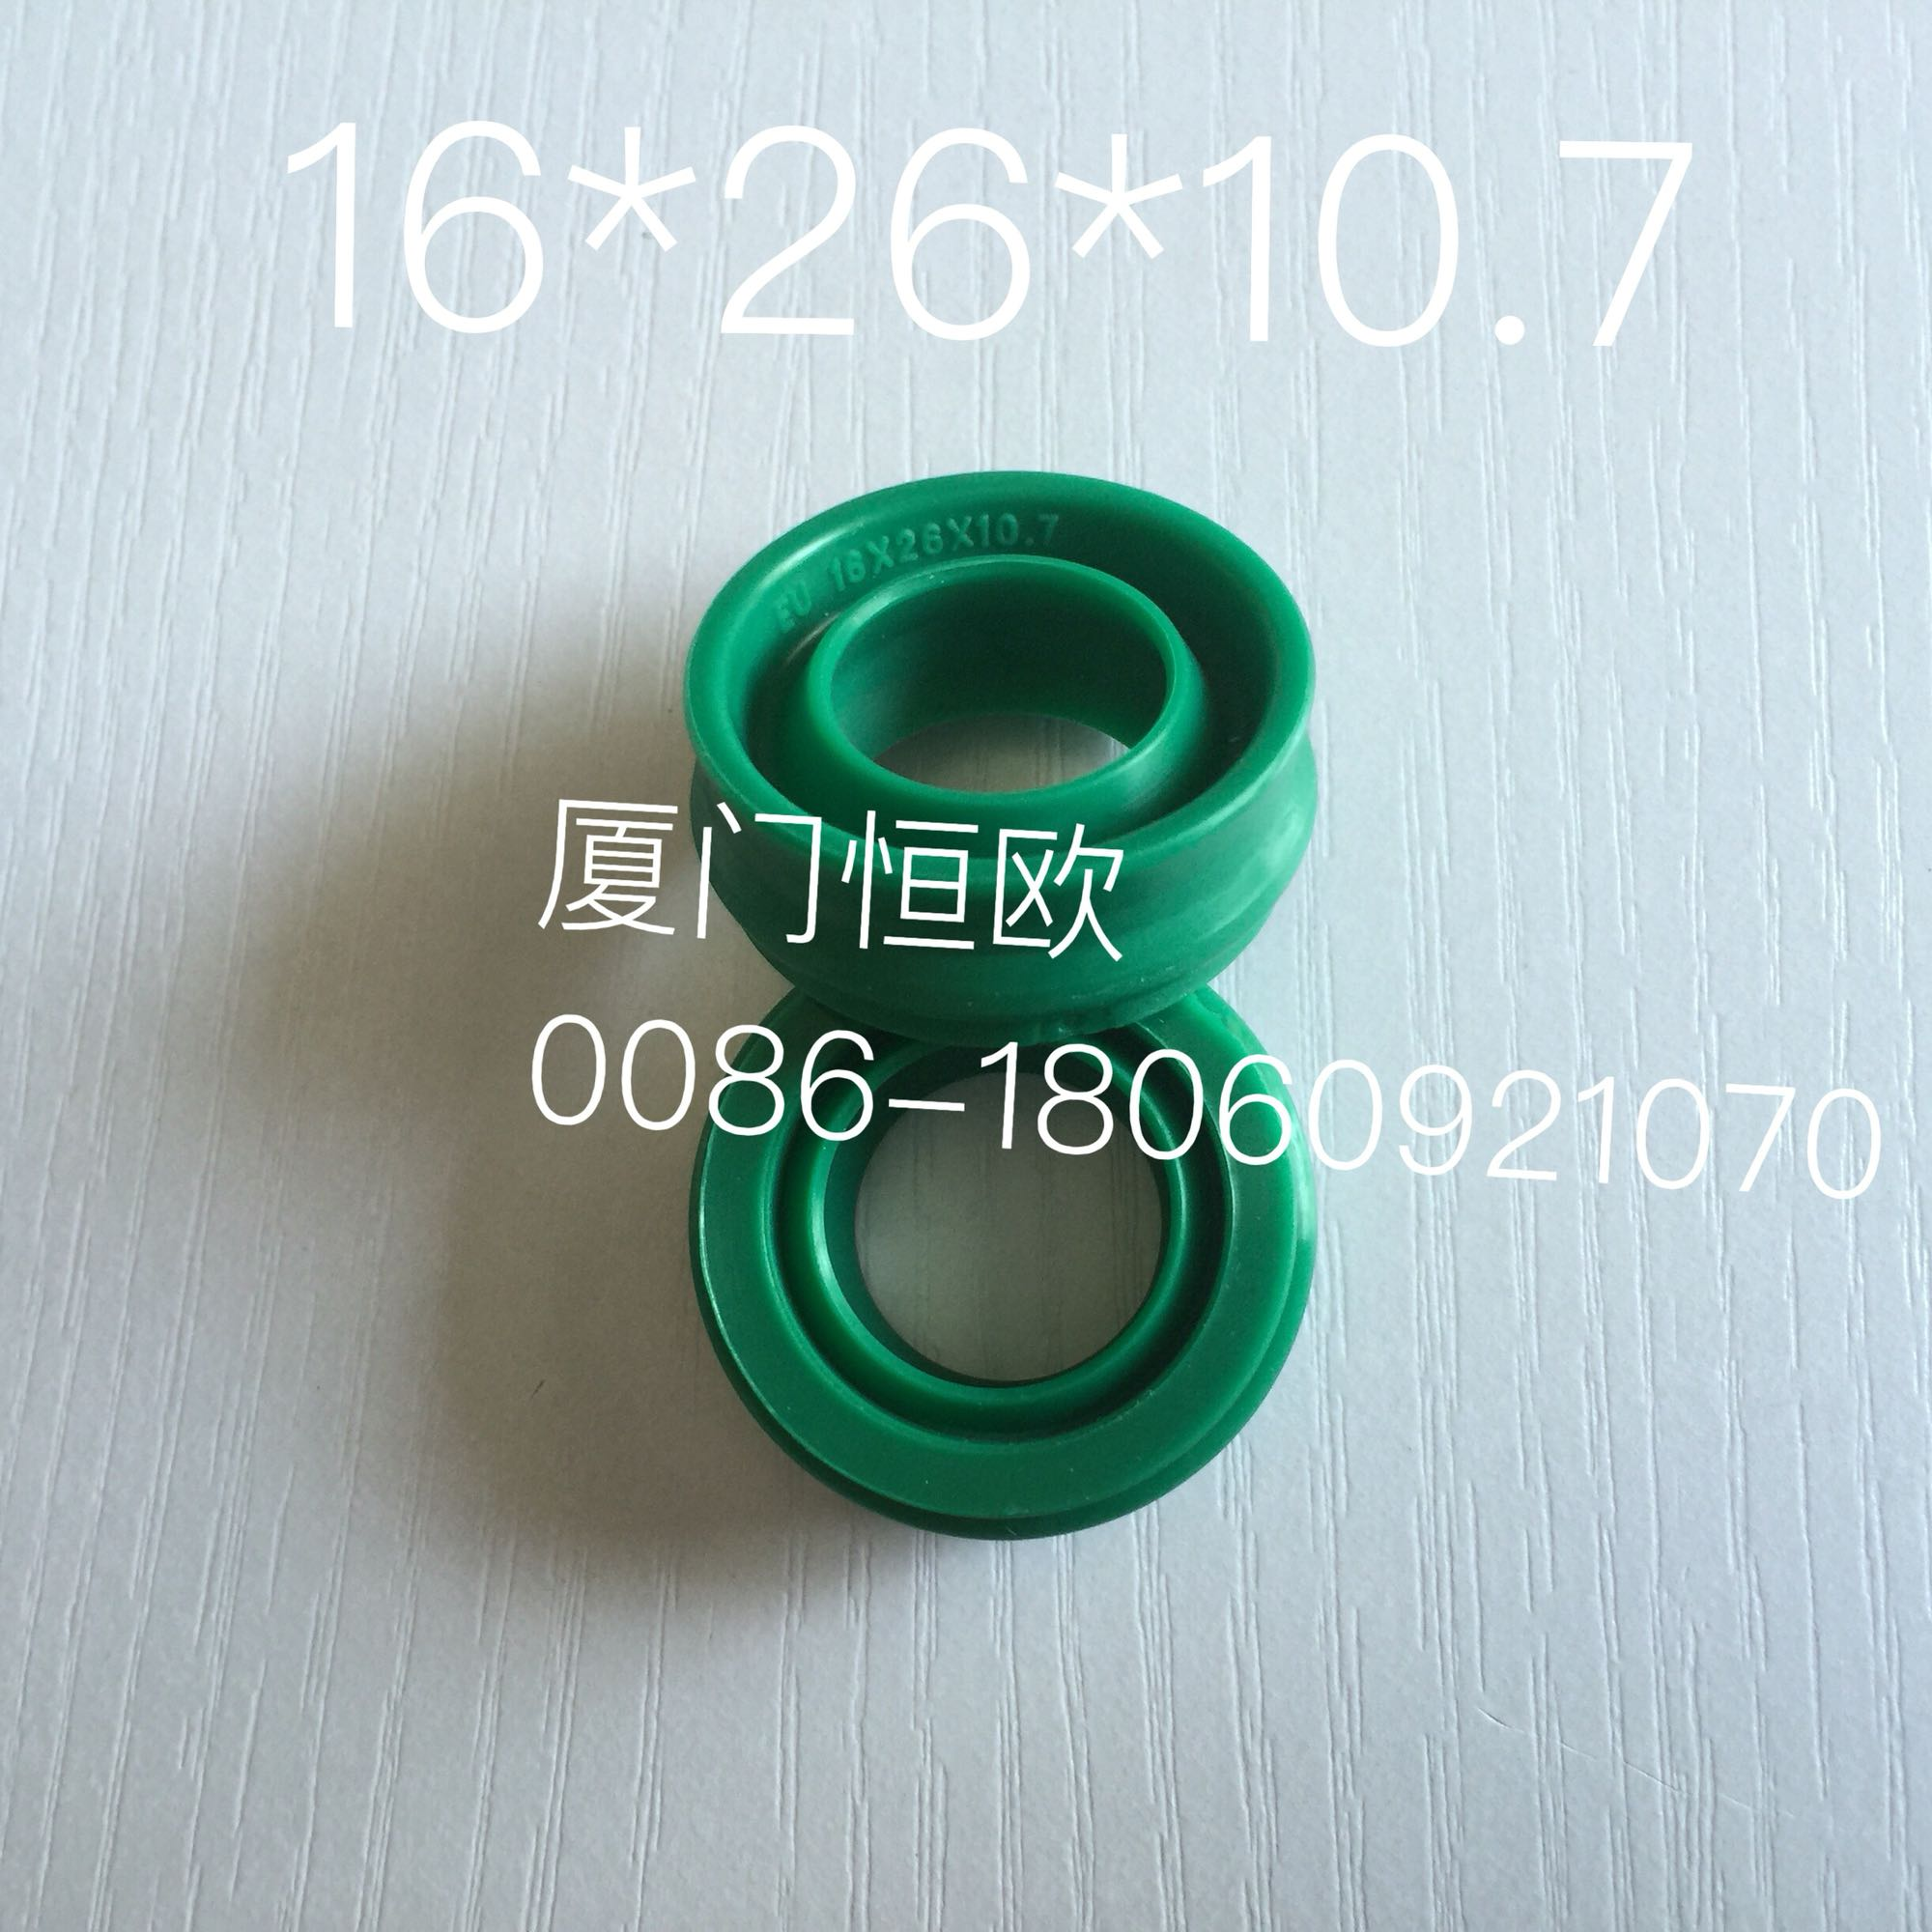 5 pieces heidelberg printing machine engine block seal ring, engine seal ring size 16*26*10.7mm